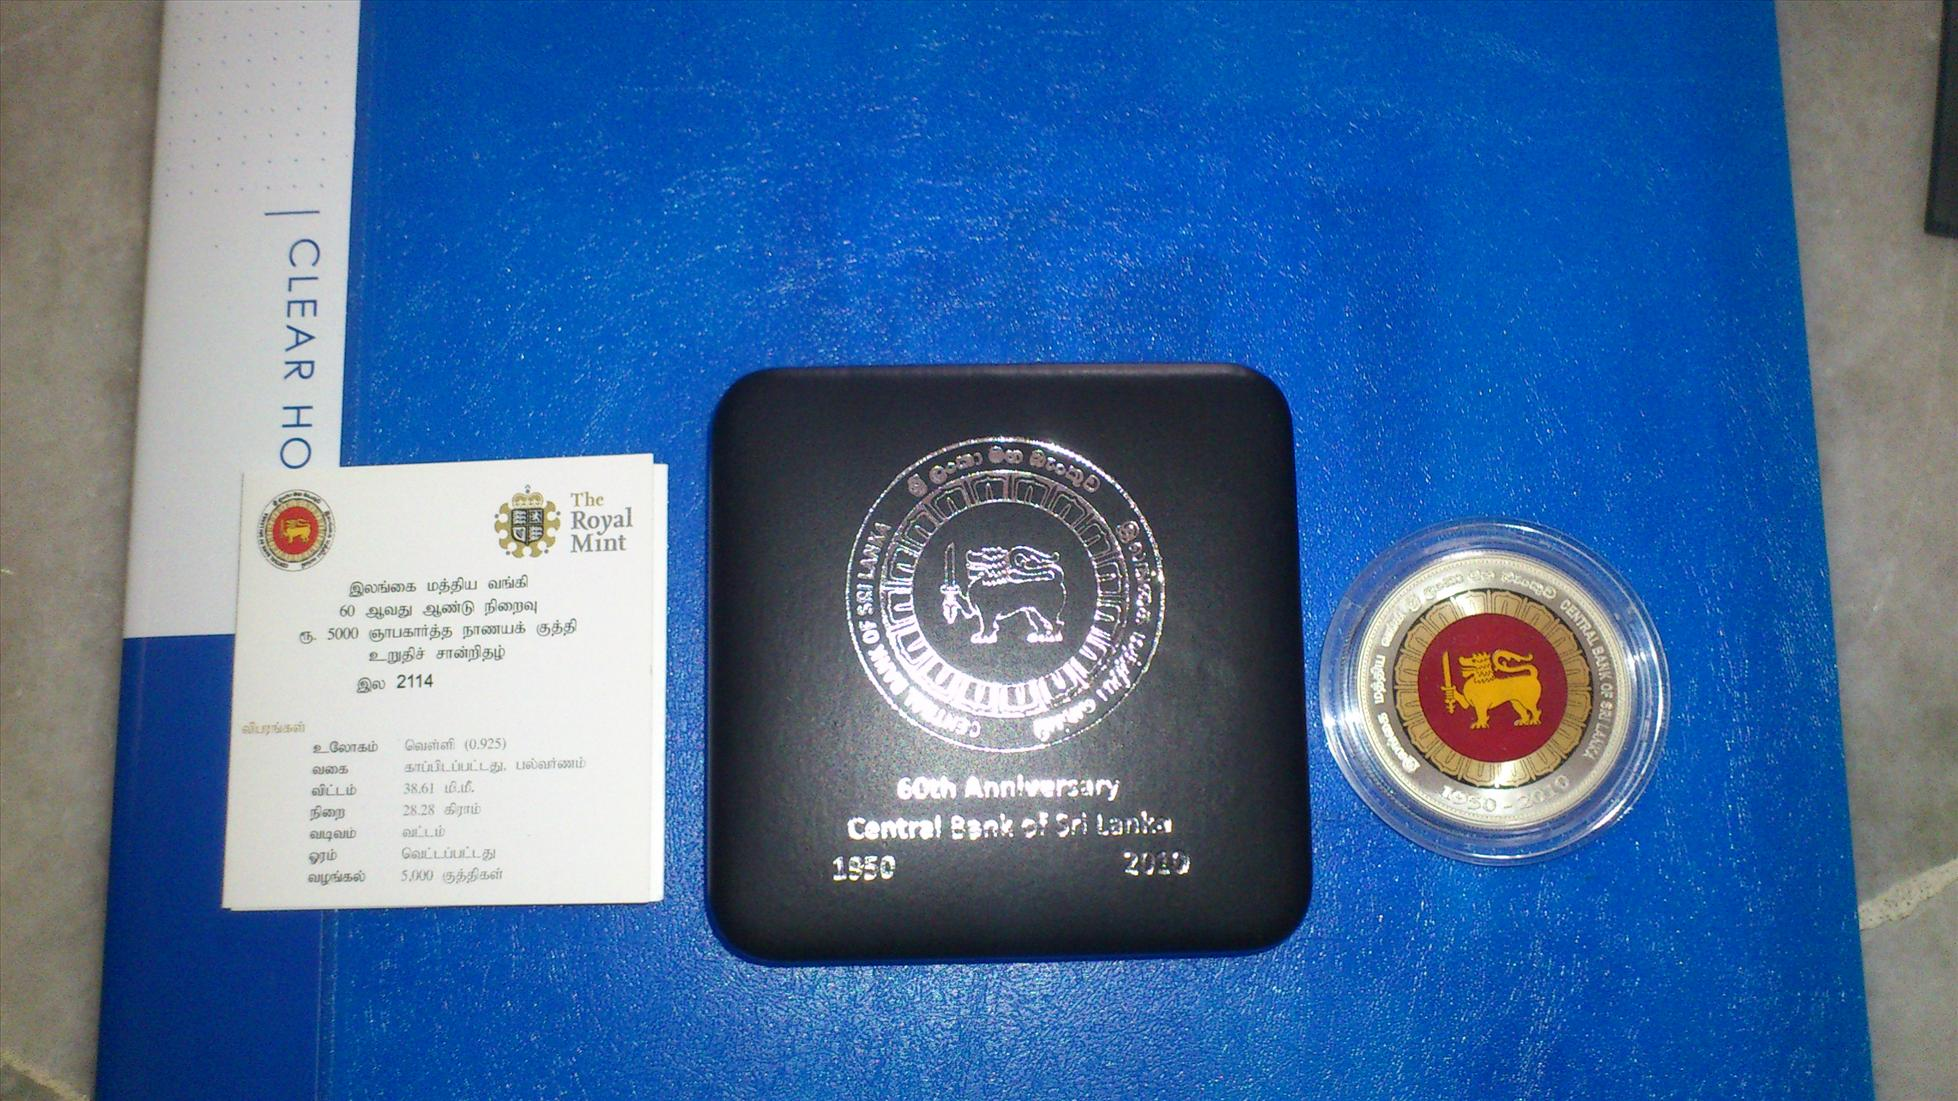 60th Anniversary Central Bank of Sri Lanka, Silver Proof by Royal Mint